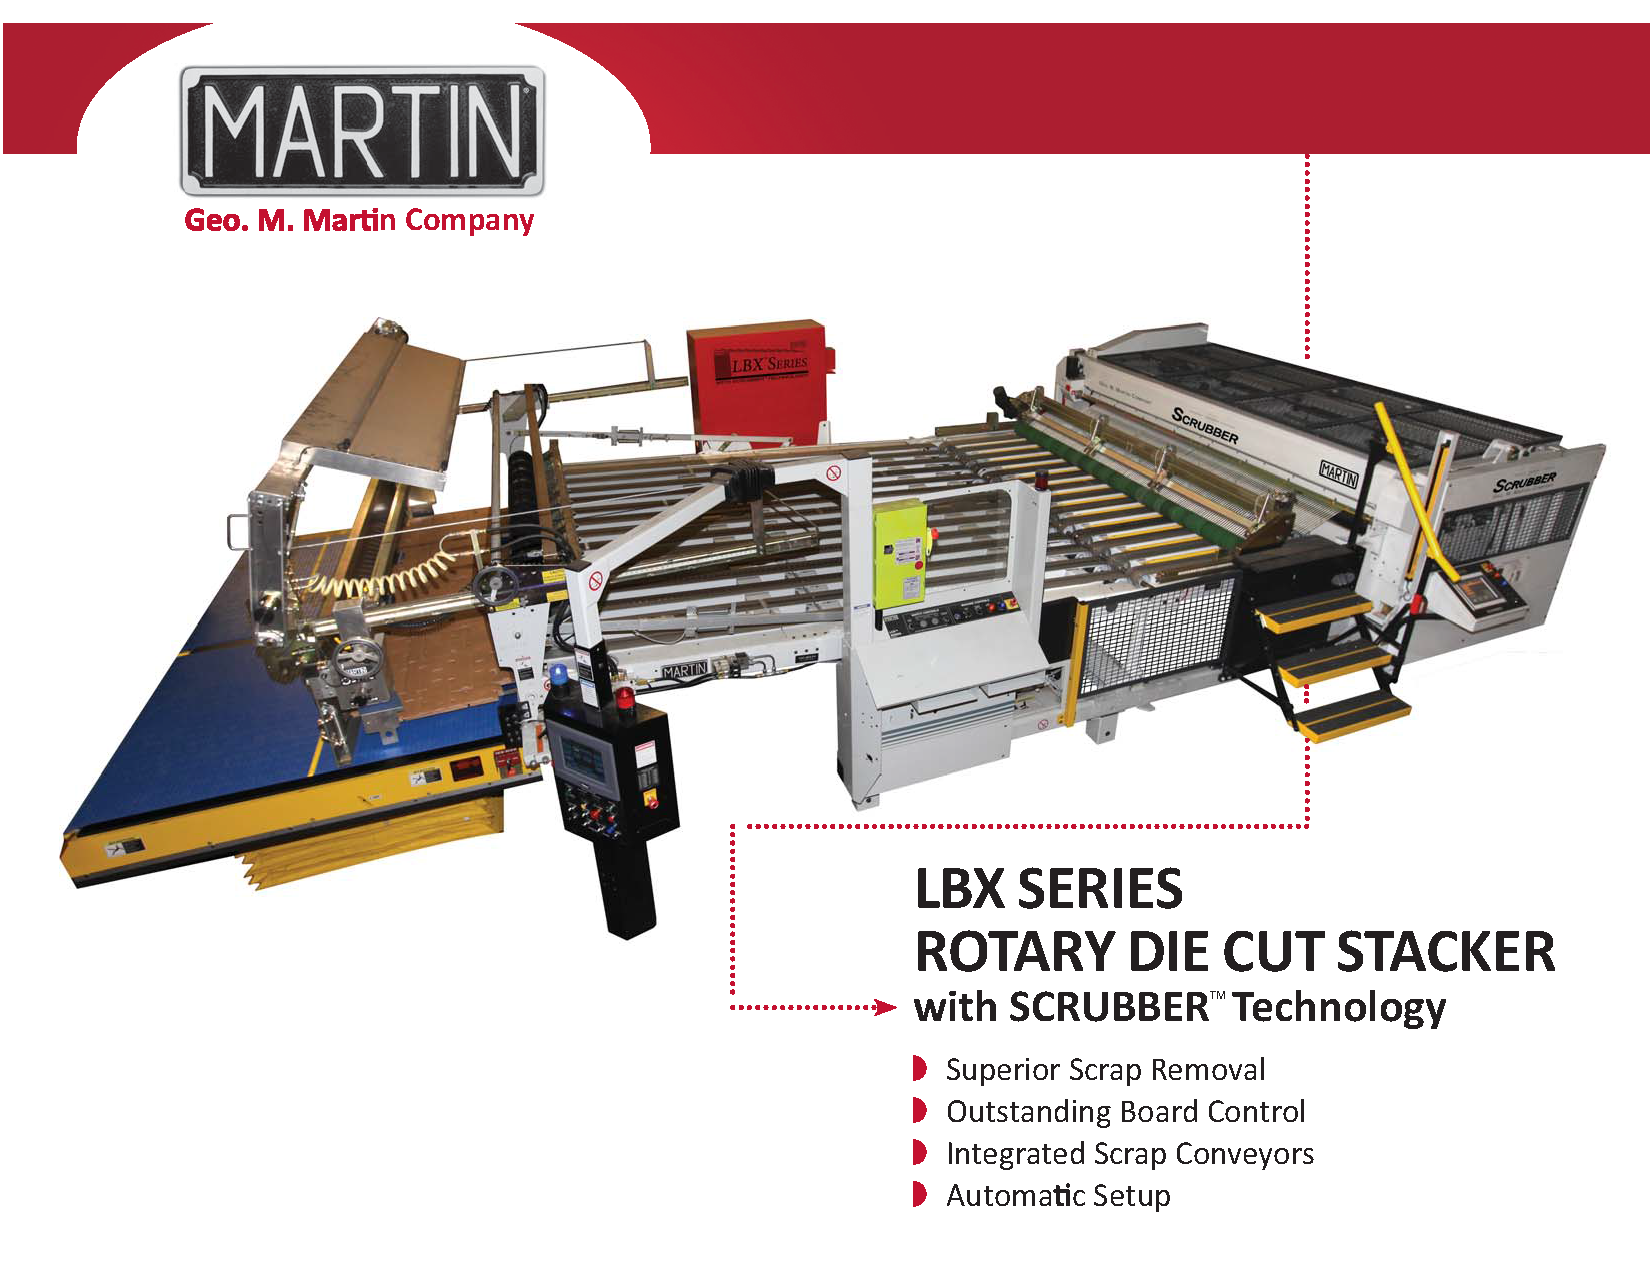 Learn more about the LBX RDC Scrubber Stacker in the Geo. M. Martin brochure!